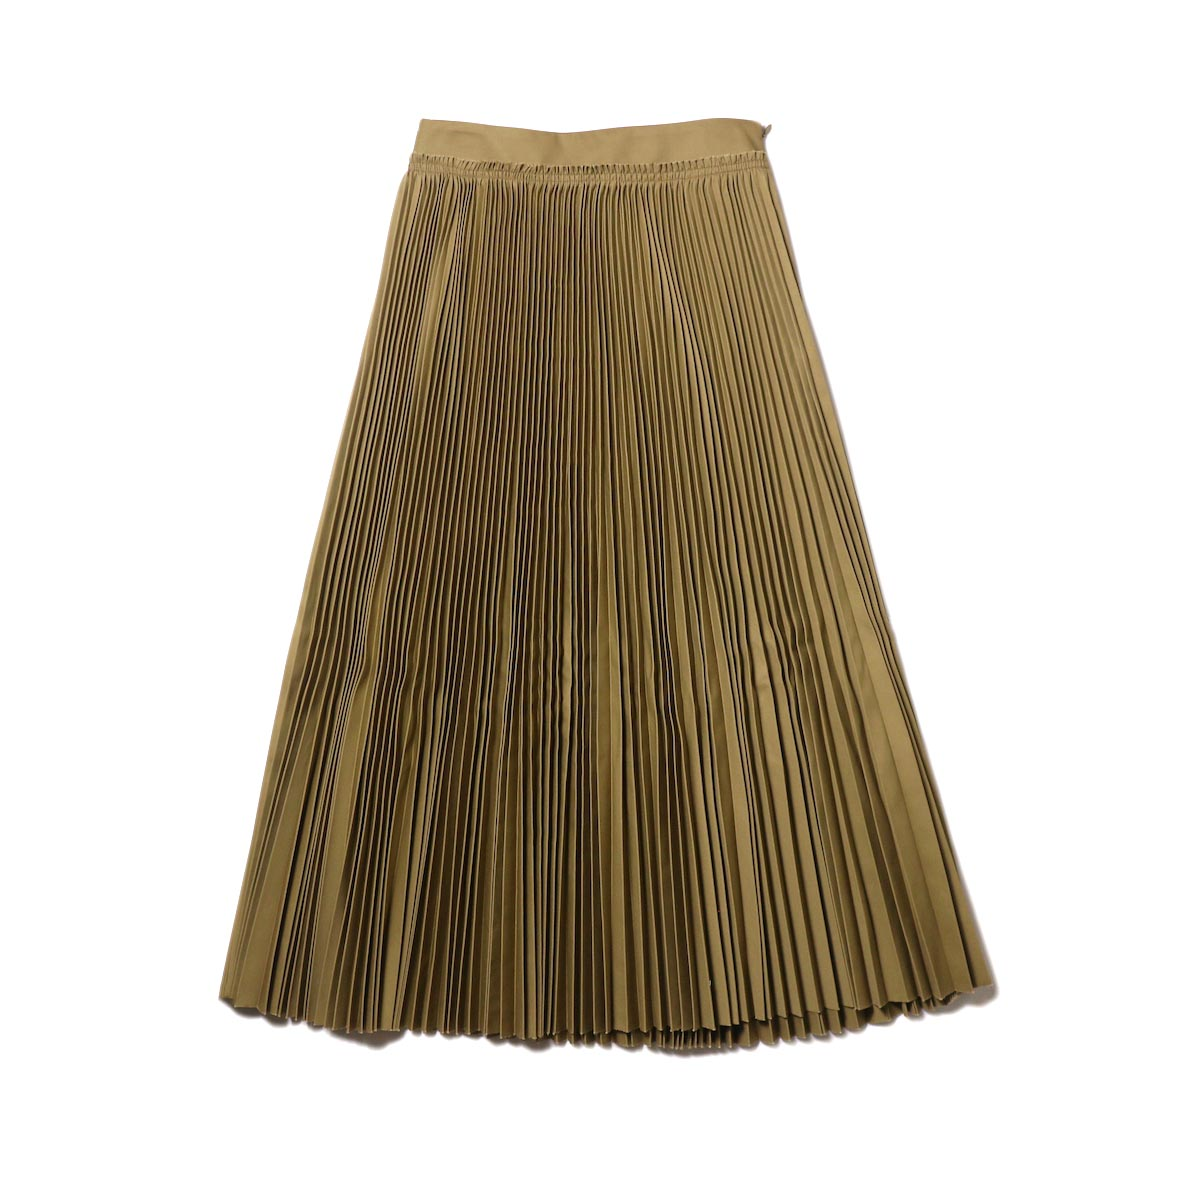 YLEVE / CHINO PLEATS SKIRT (beige)